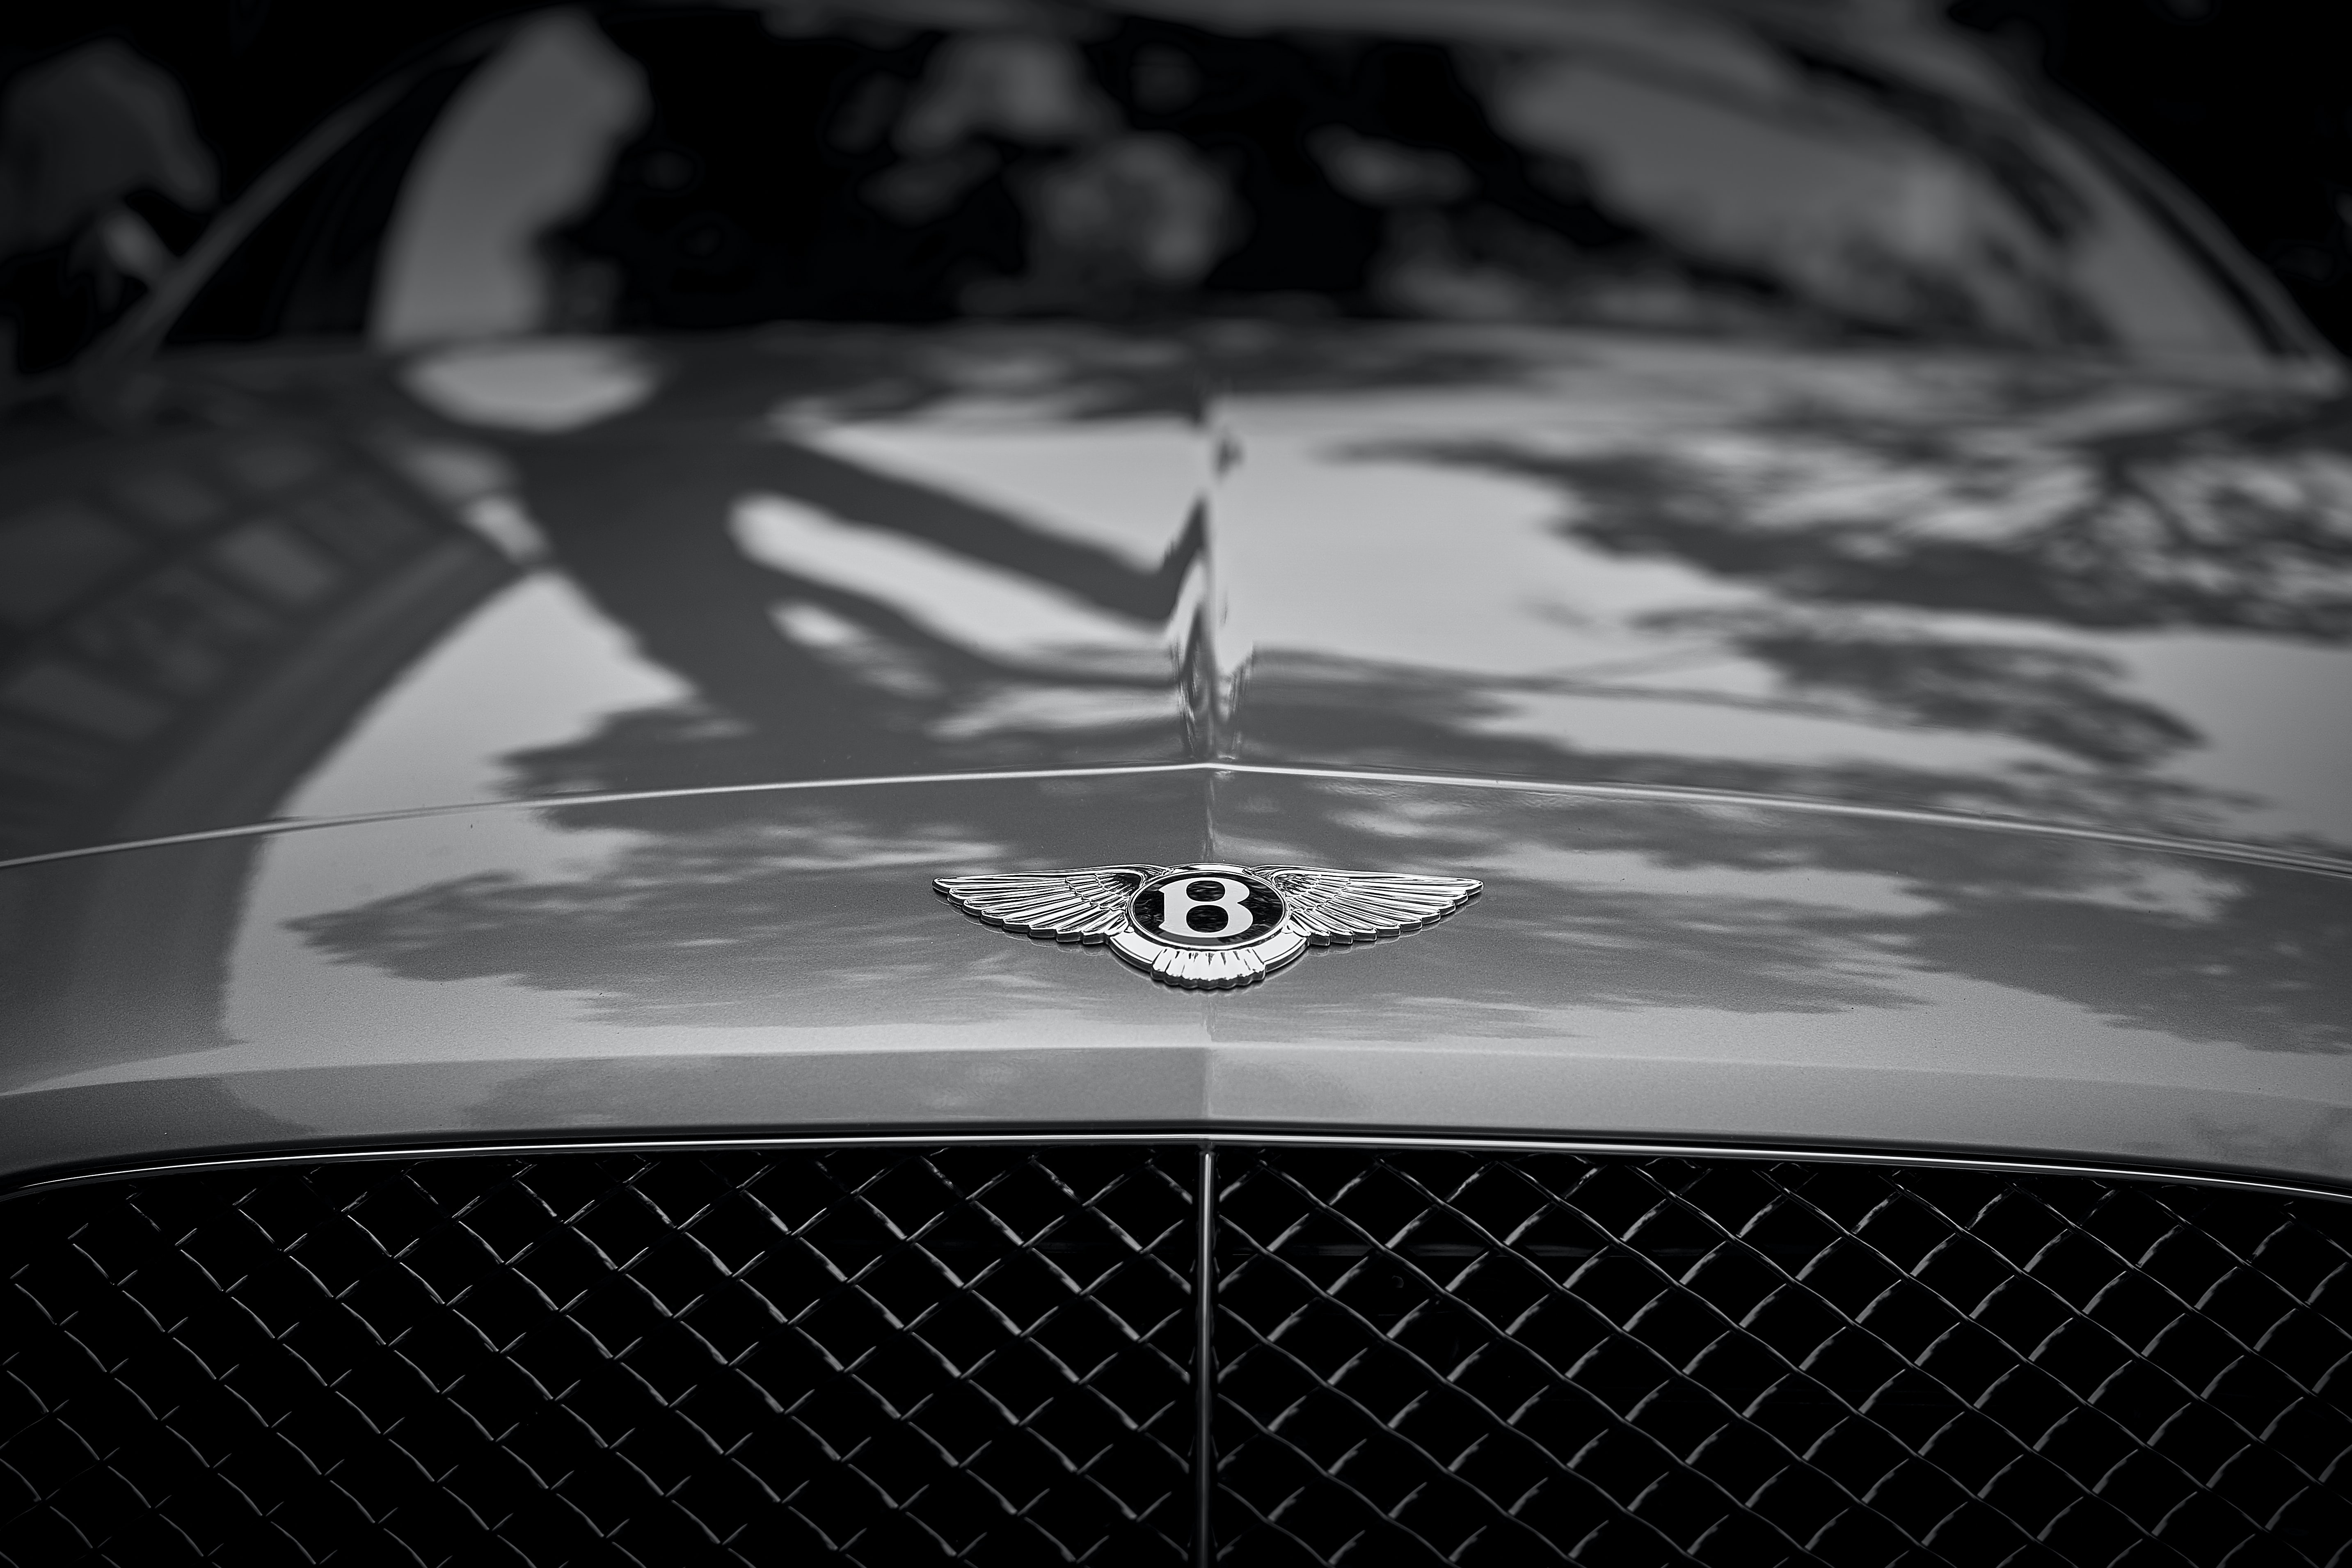 grayscale photo of car